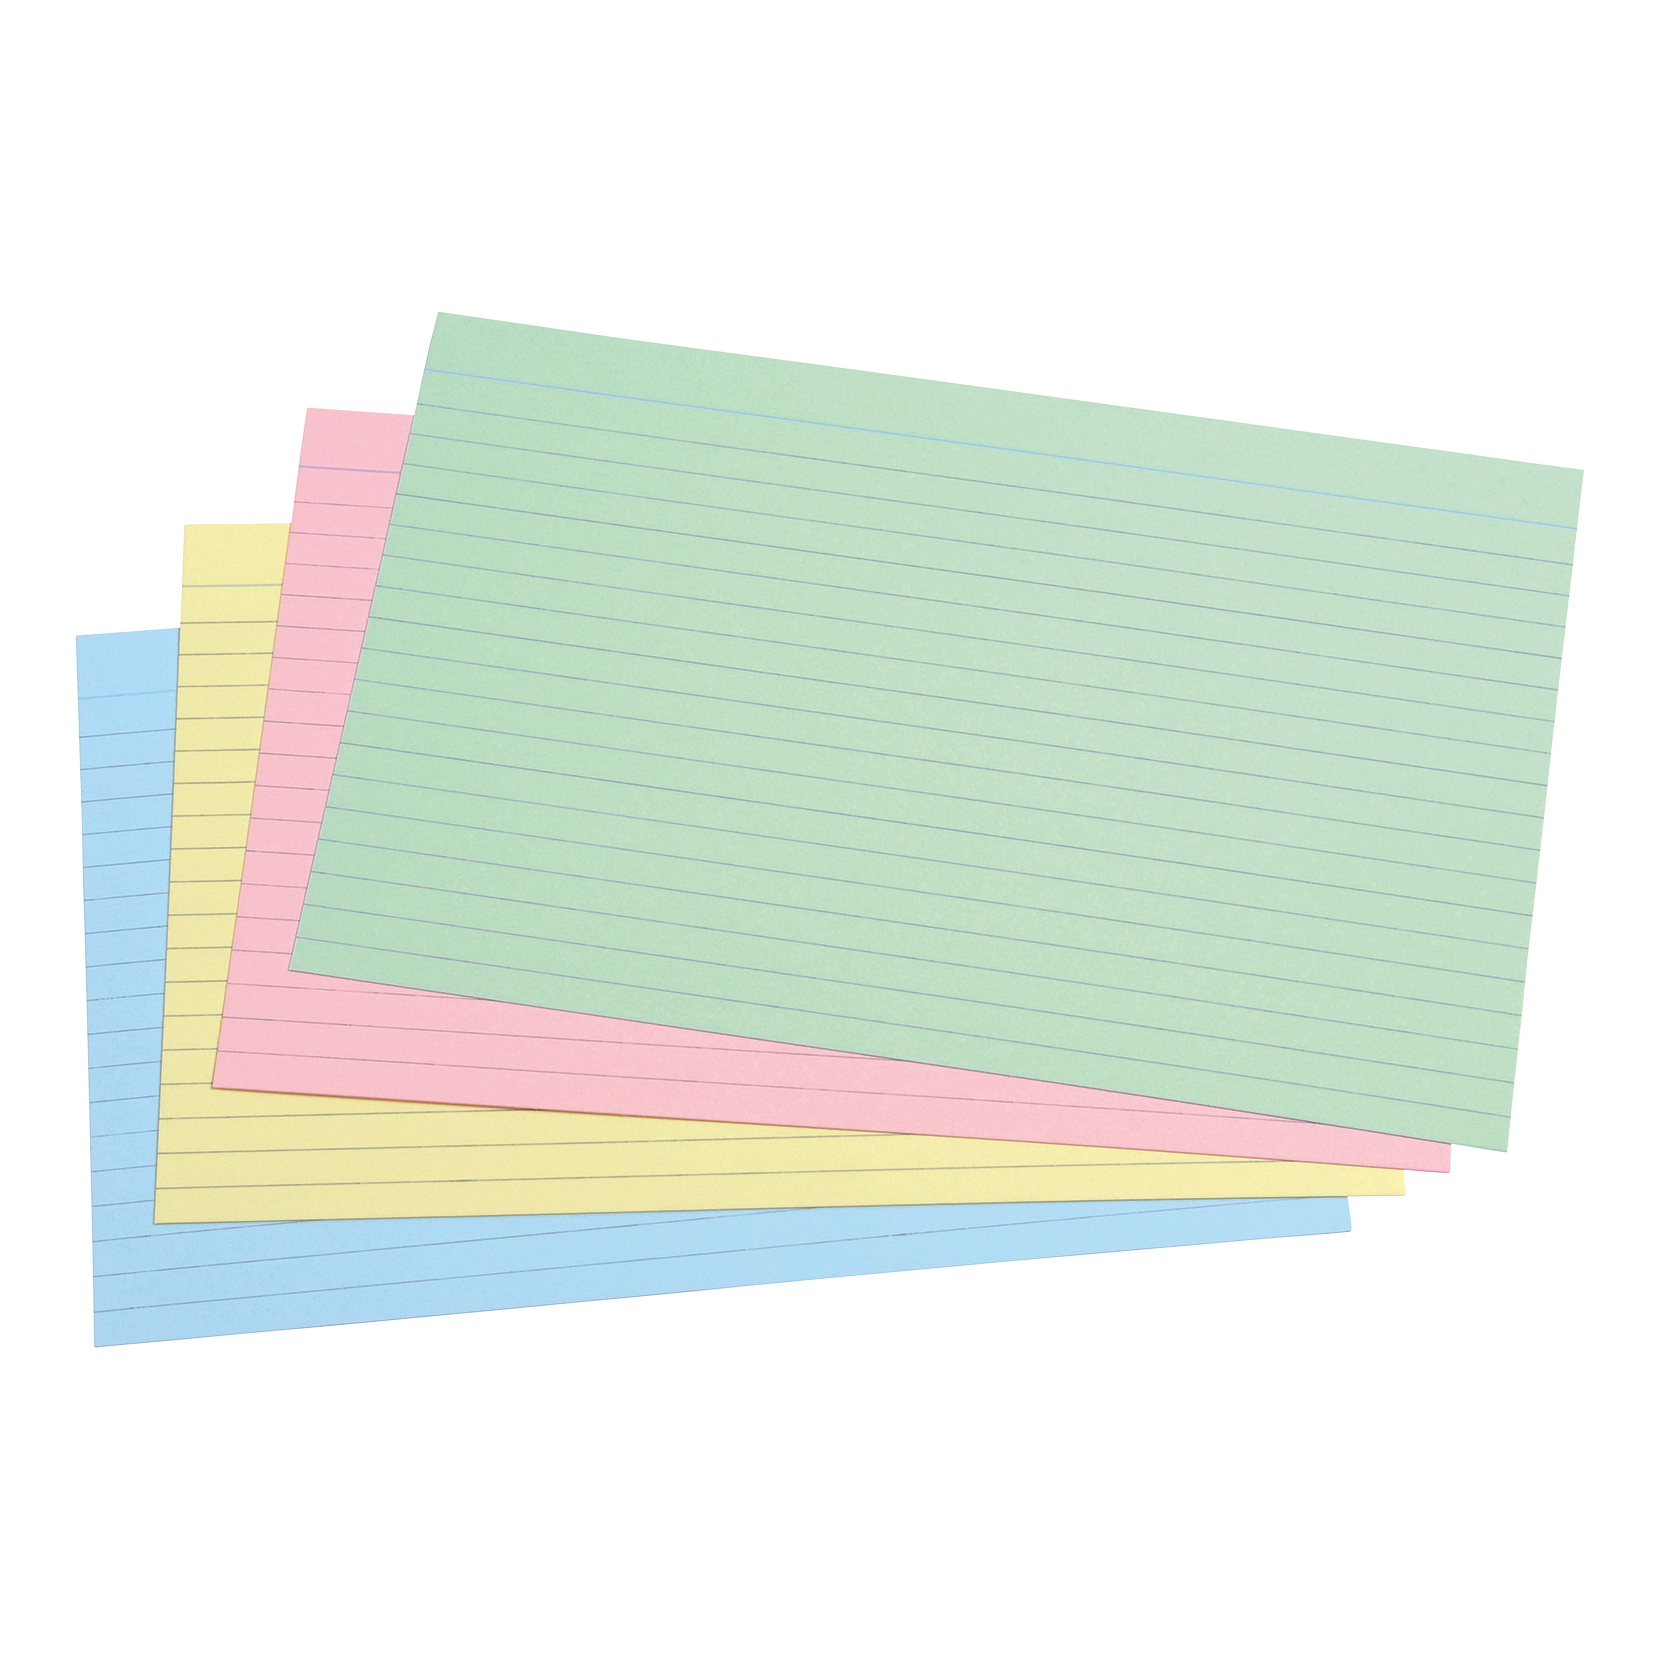 Record Cards 5 Star Office Record Cards Ruled Both Sides 8x5in 203x127mm Assorted Pack 100